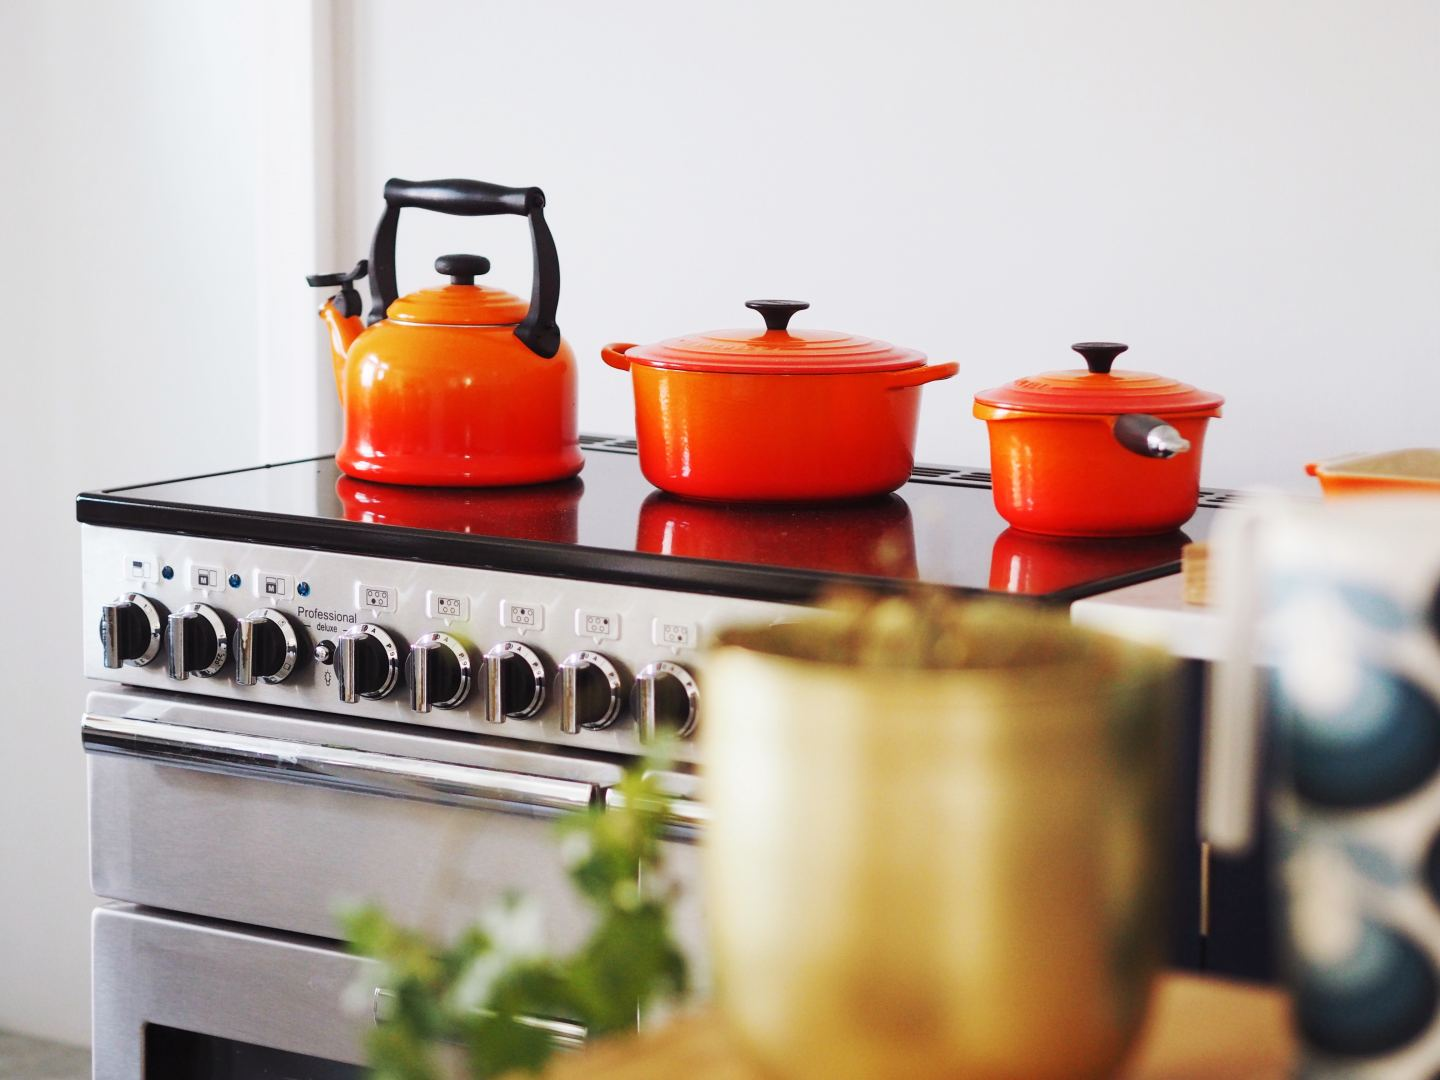 le creuset cookwear orange fashion for lunch kitchen rangemaster cooker AO